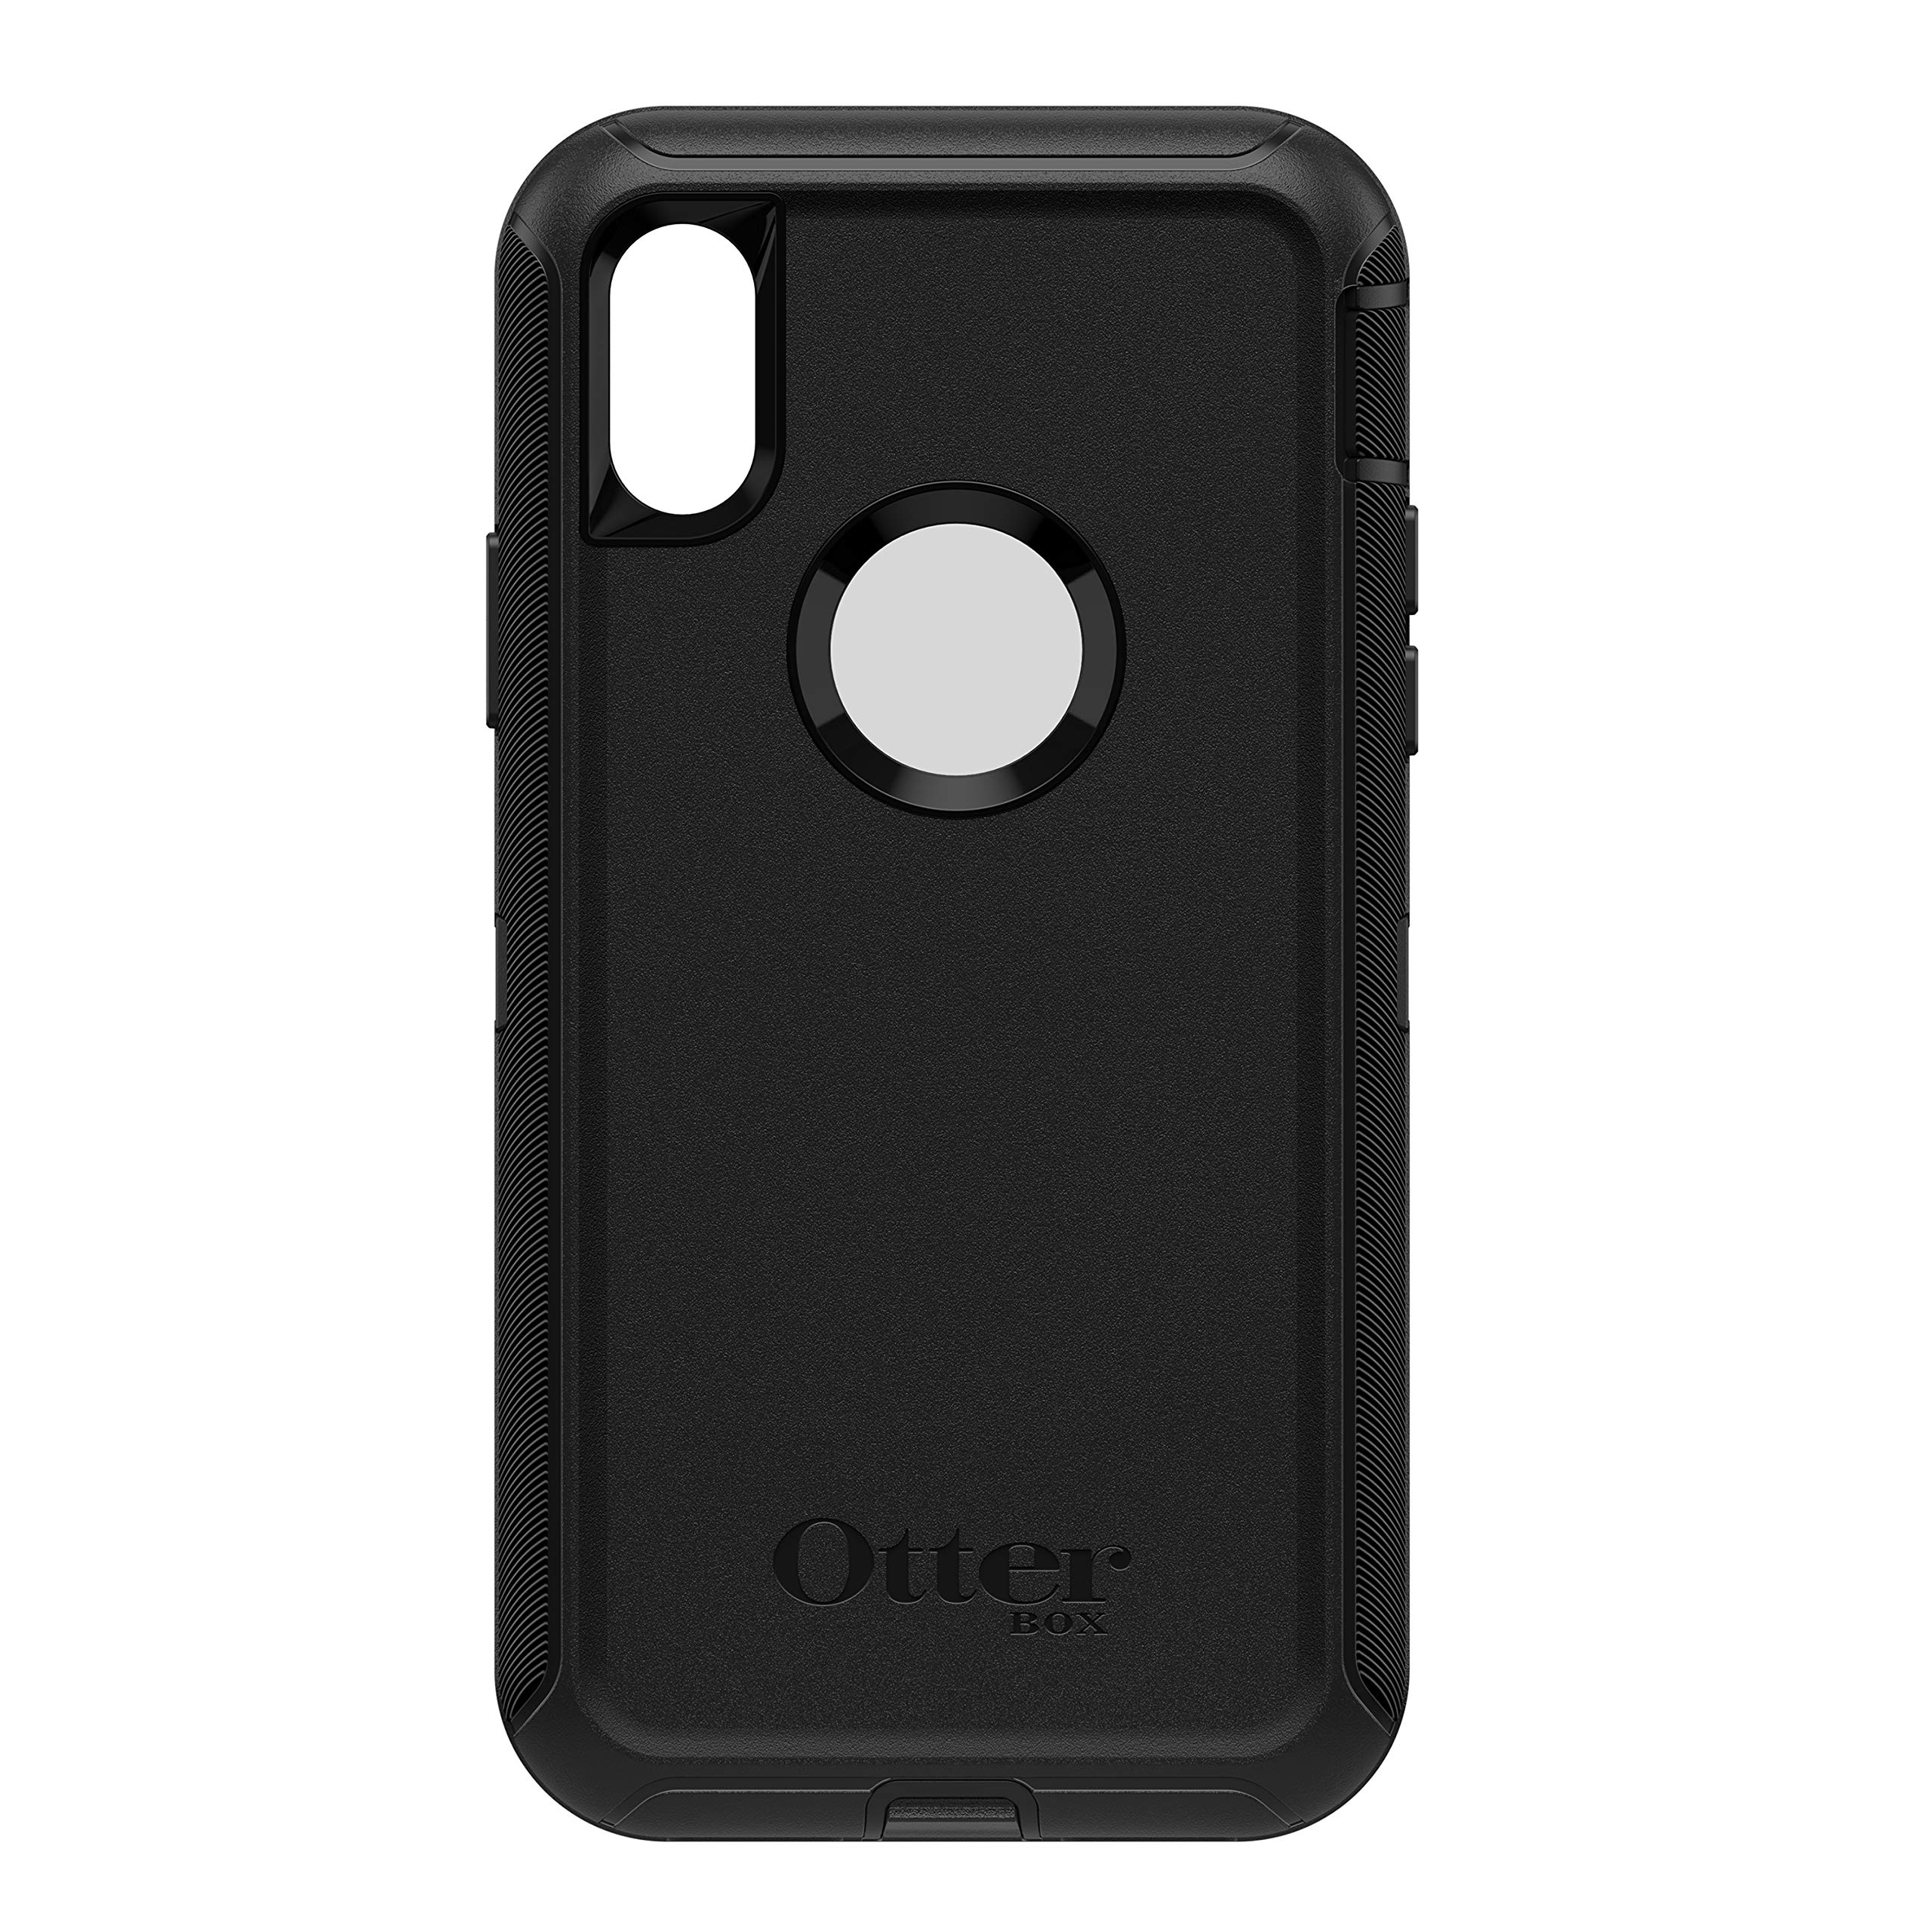 OtterBox Defender iPhone Xs 5.8 inch Black Screenless Screenless Case by OtterBox